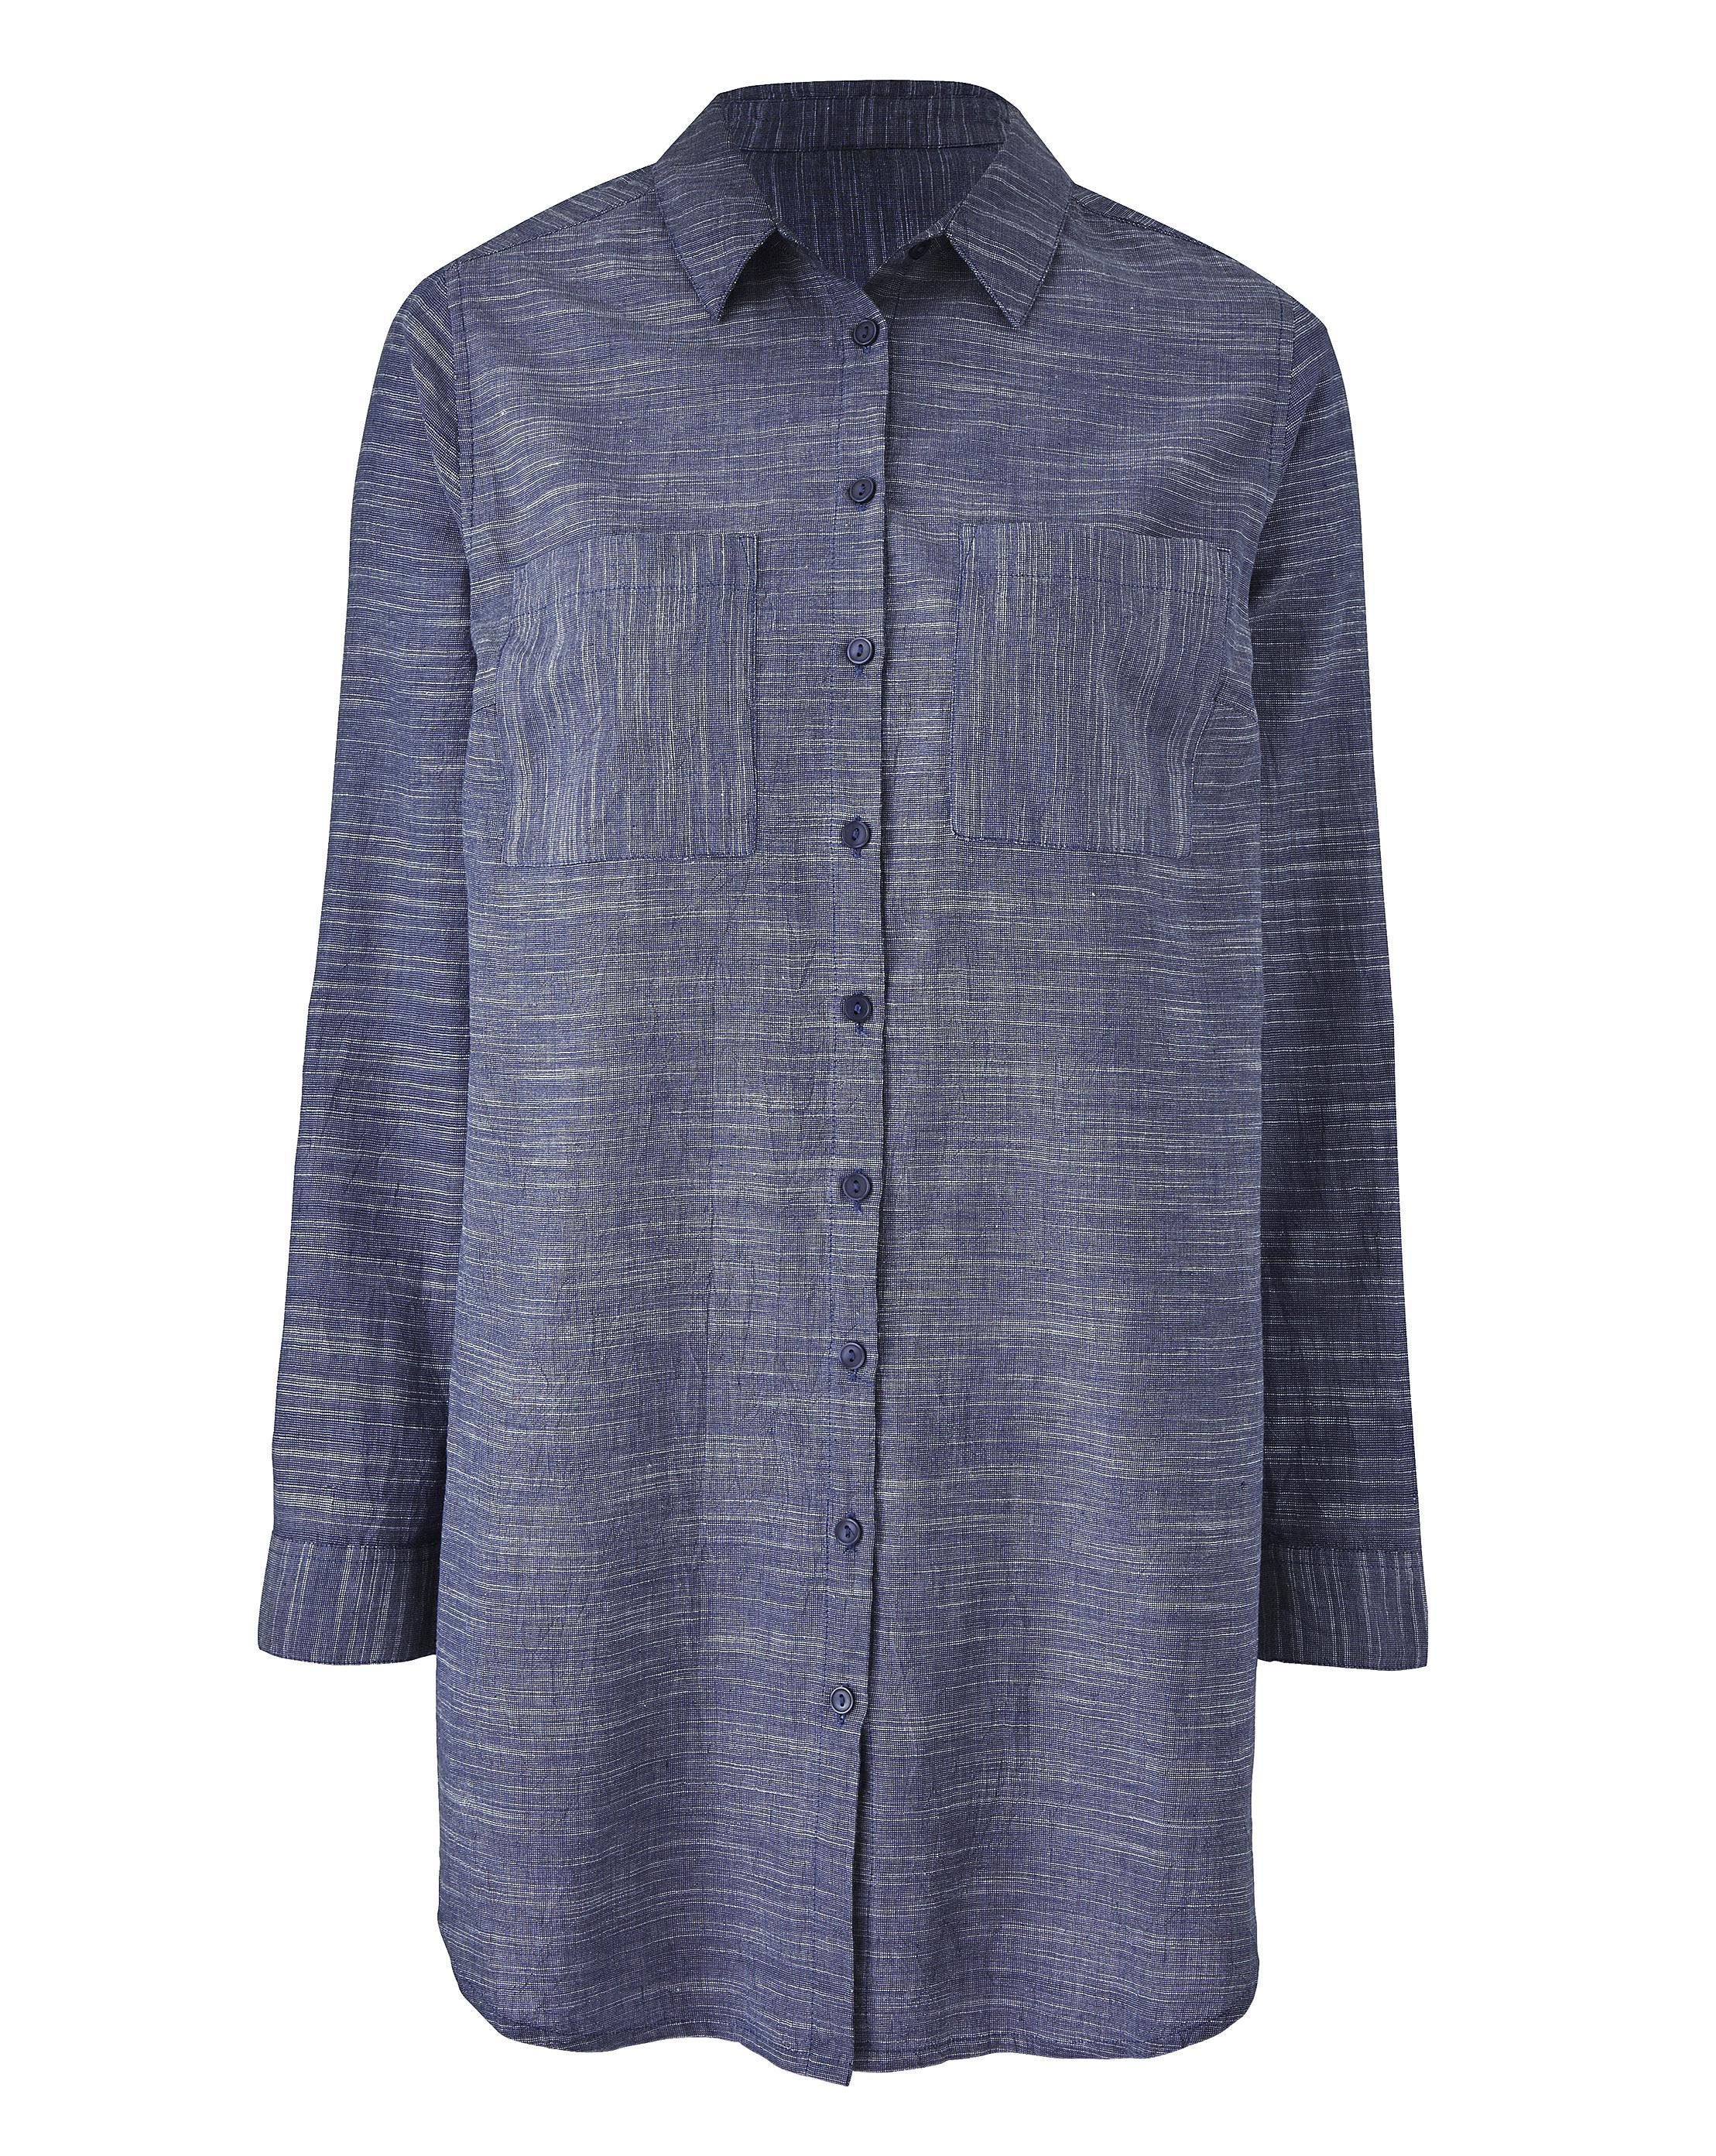 a7add4168c Lyst - Simply Be Long Sleeve Tunic Shirt in Blue